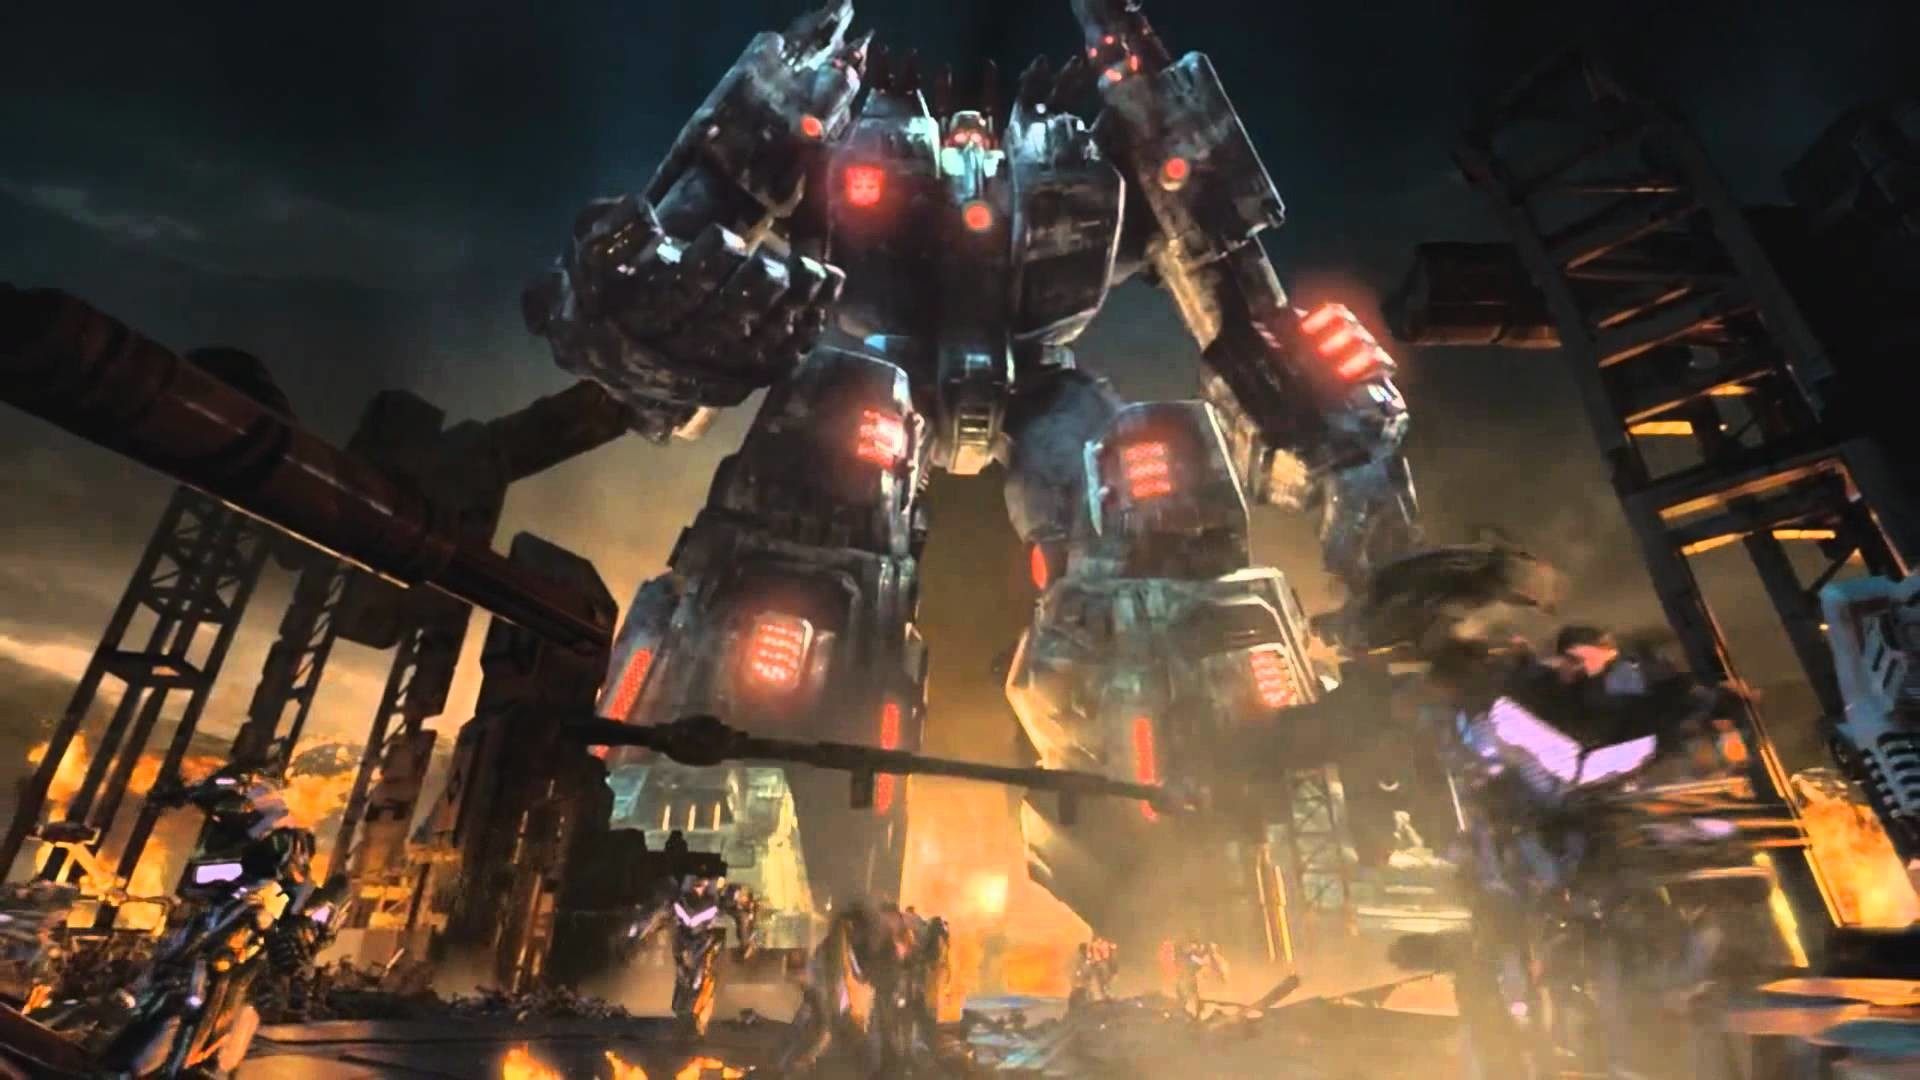 Fall Of Cybertron Wallpaper Hd Fall Of Cybertron Wallpaper 80 Images